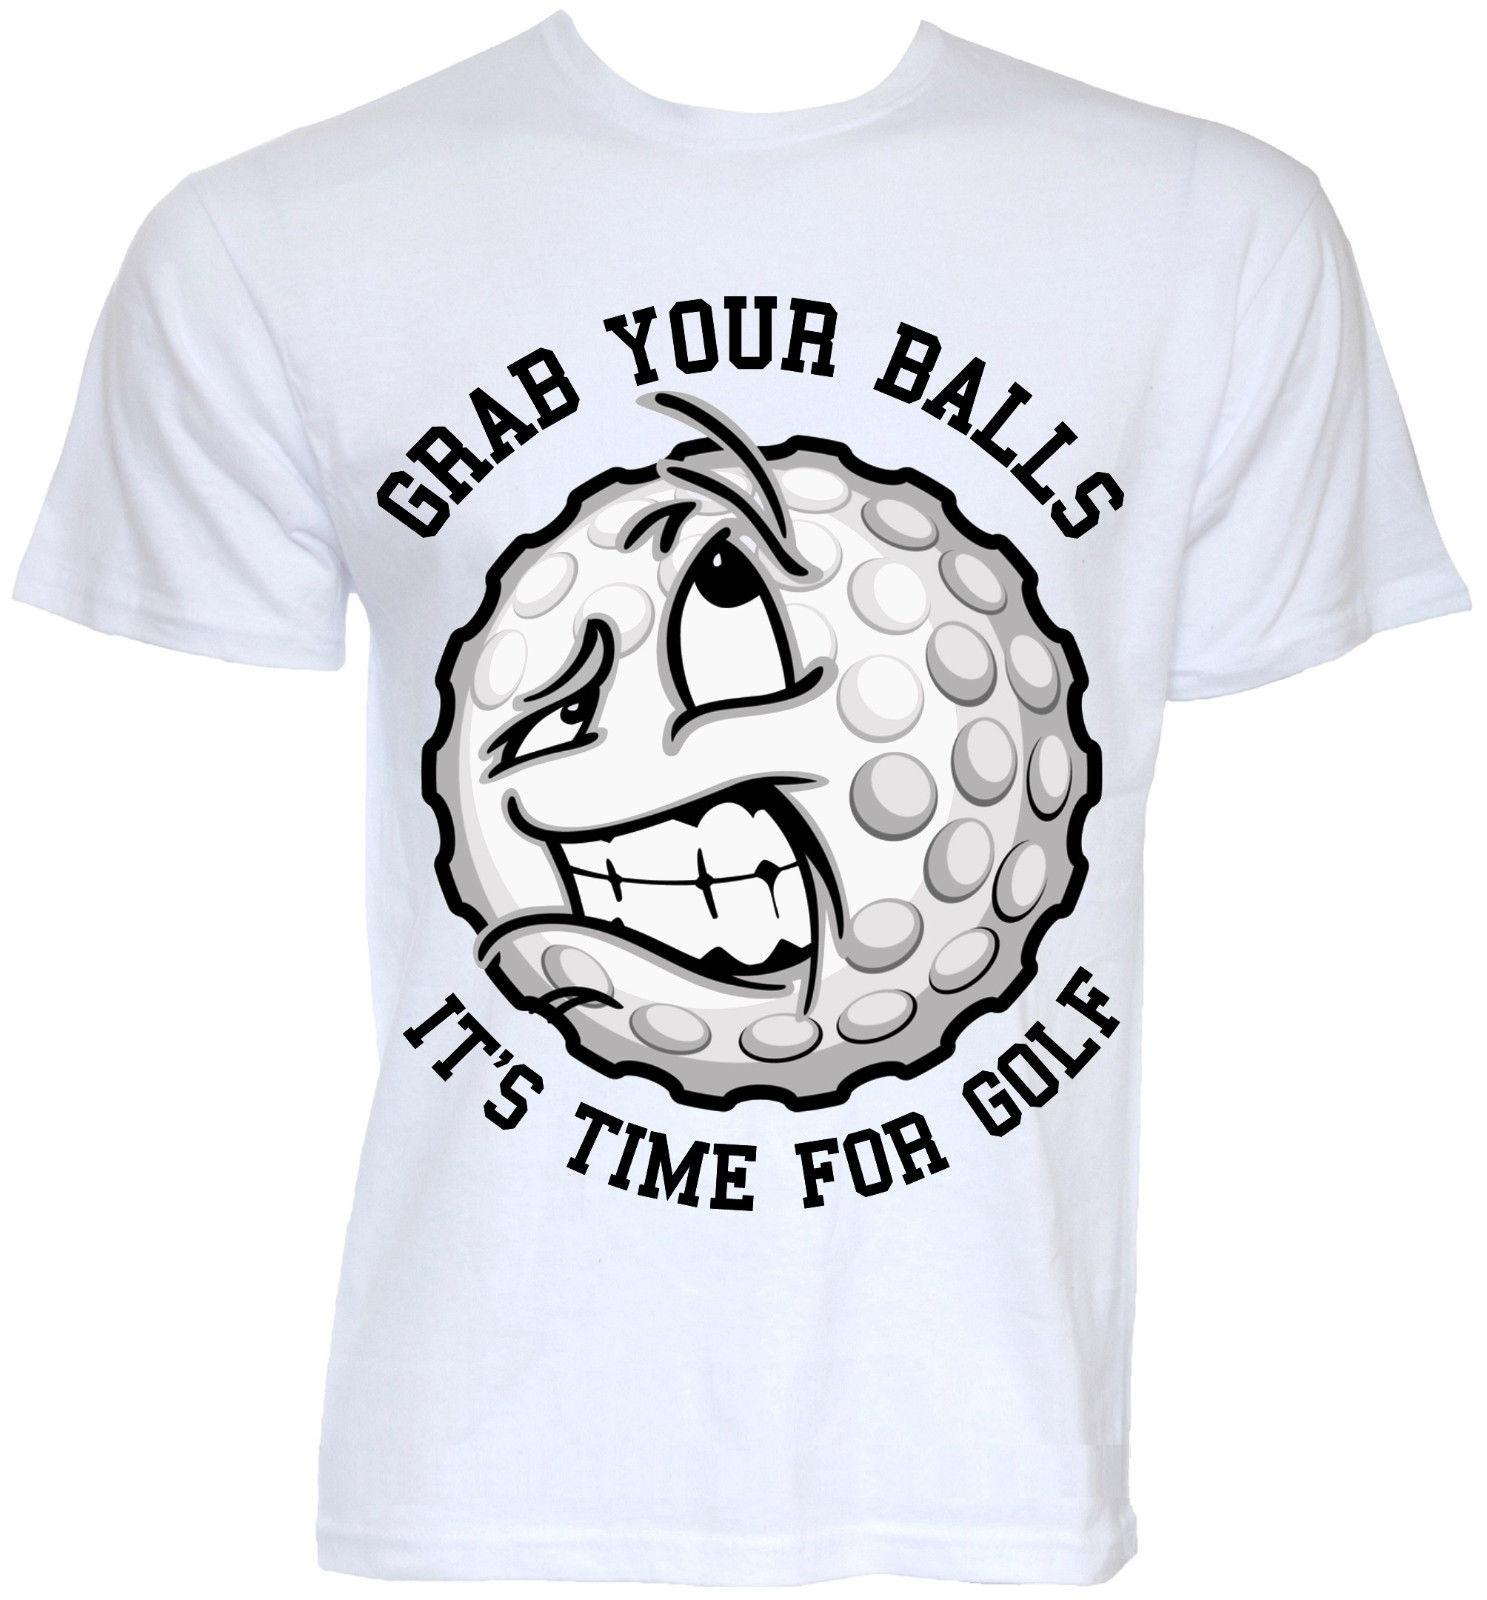 dfe205ef97 NOVELTY GOLF T SHIRTS PRESENTS MENS FUNNY COOL GOLFER GOLFING JOKE GIFTS T  SHIRT T Shirts With Prints Humorous Shirts From Robotrave21, $11.17|  DHgate.Com